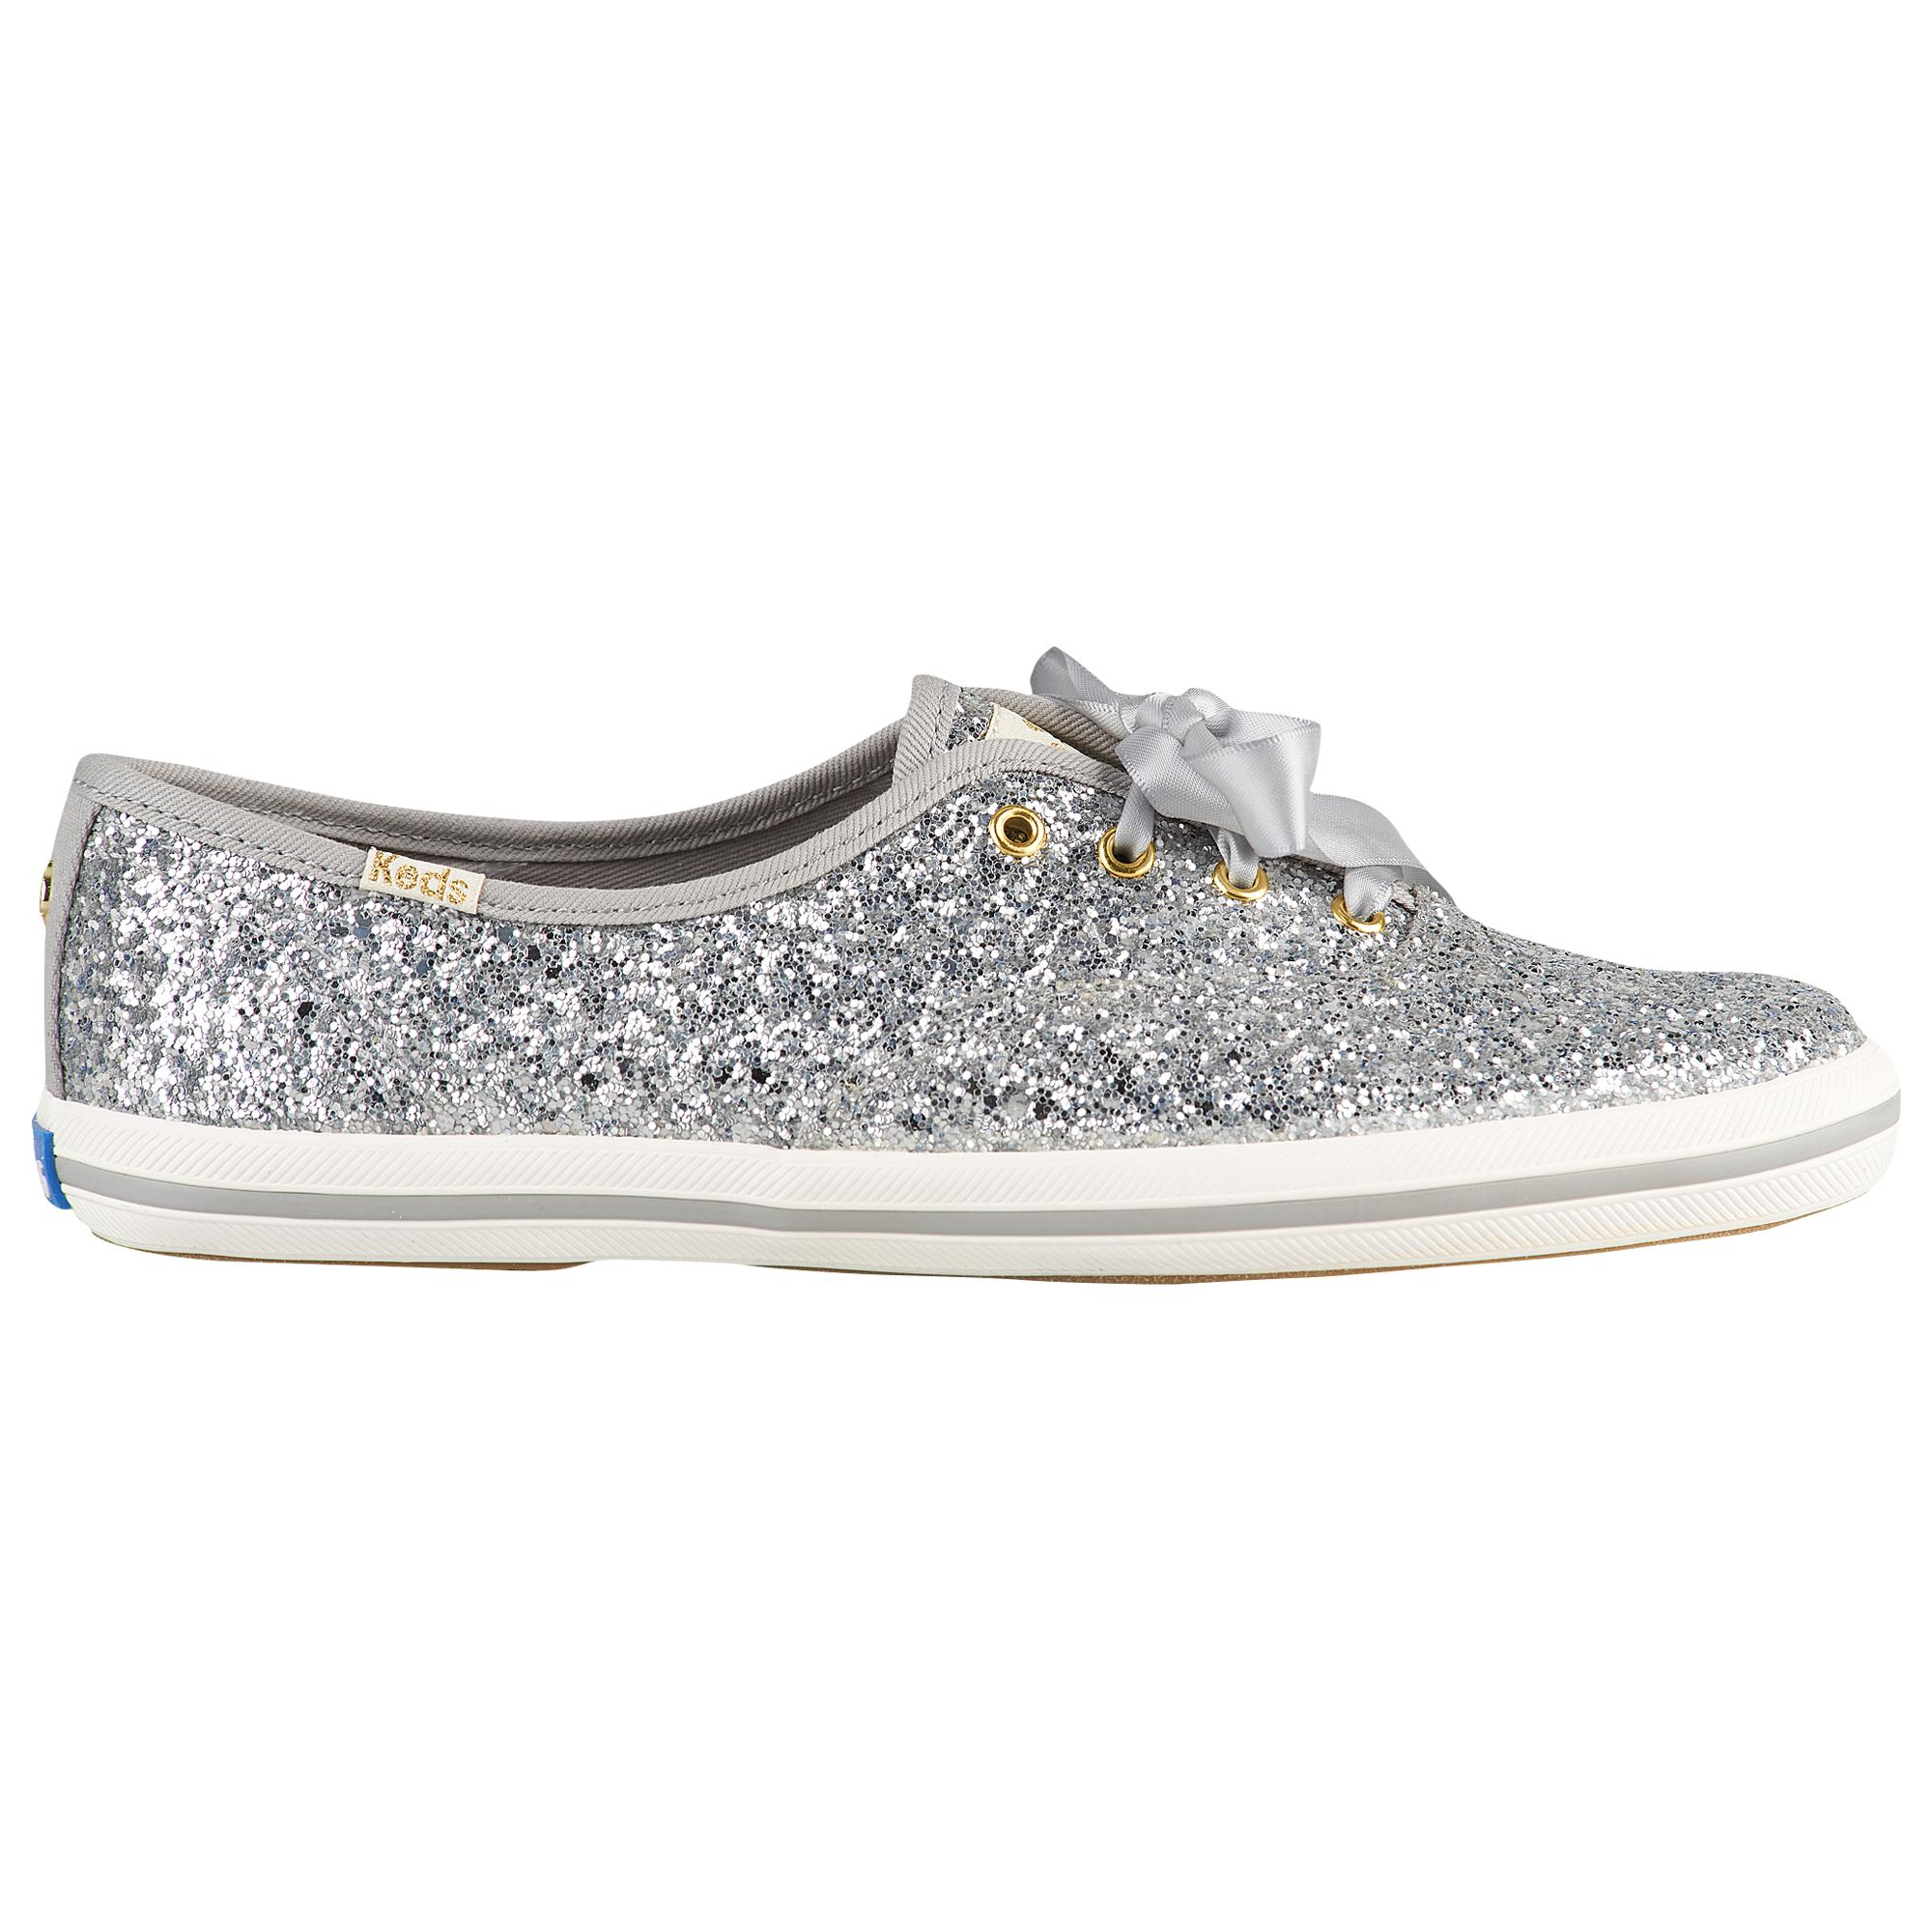 bc8a76f266bf5 Lyst - Keds For Kate Spade Champion Glitter in Metallic